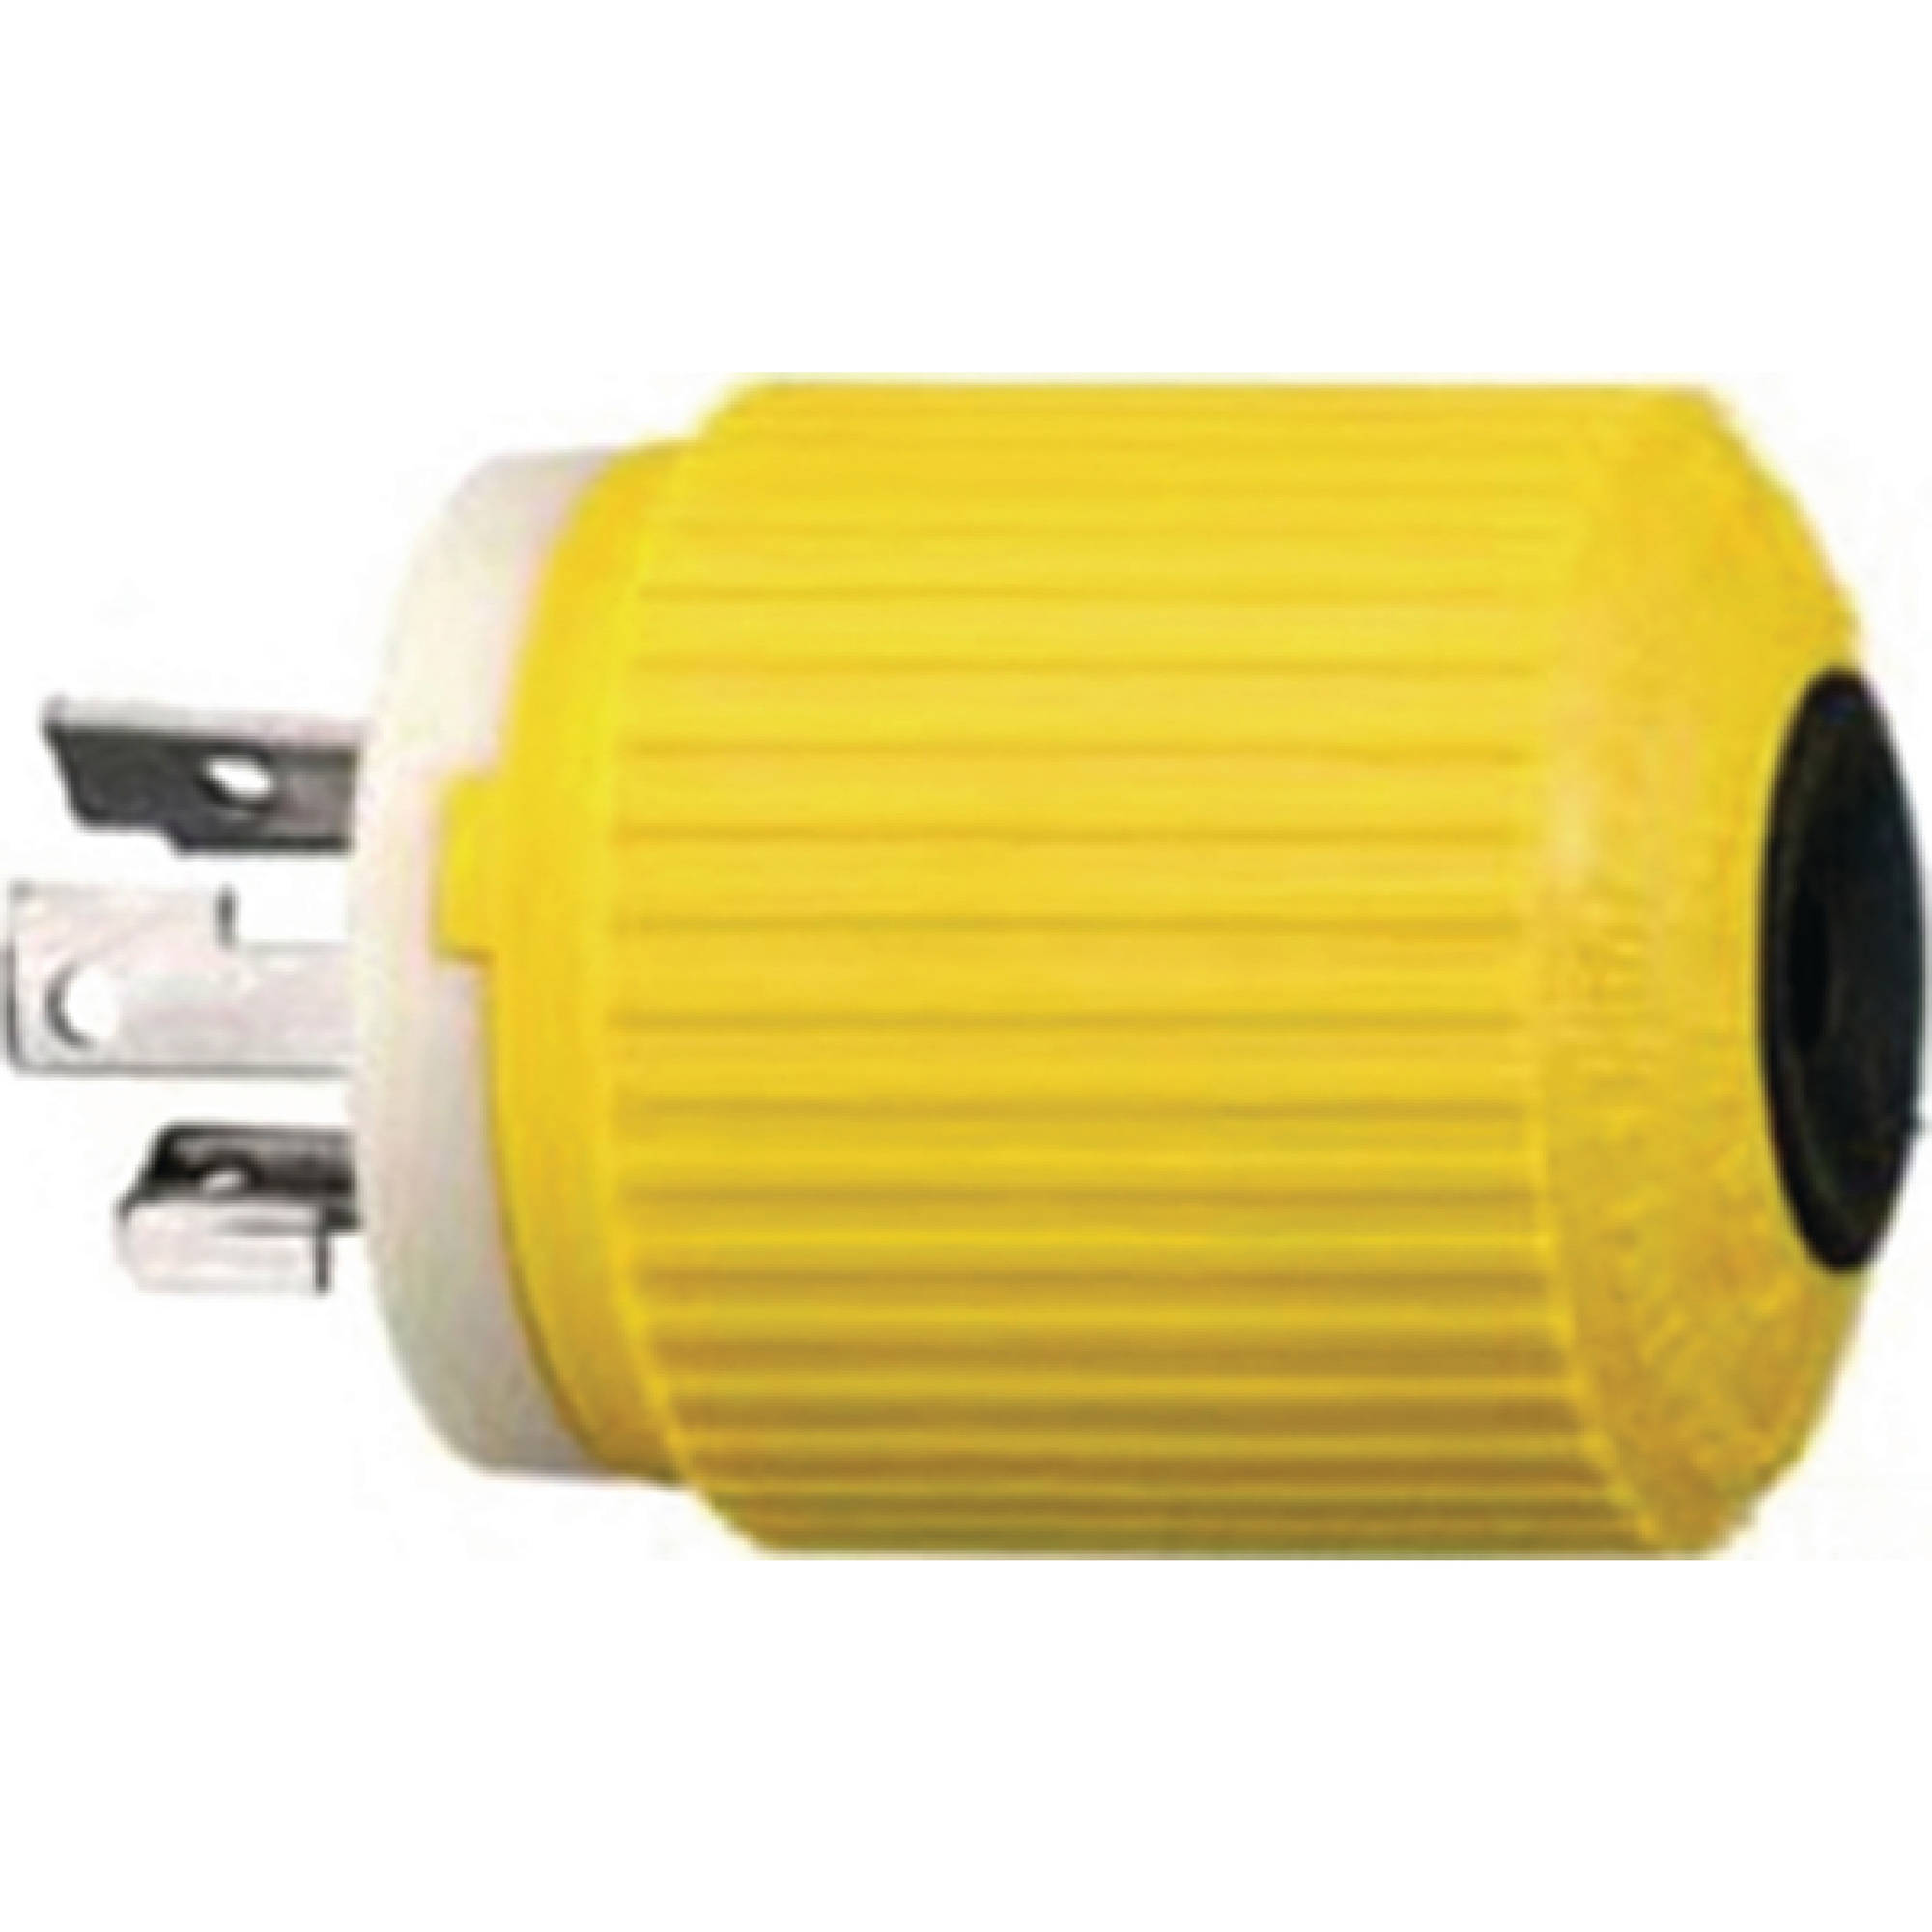 Hubbell HBL328DCP Yellow Electric Fishing Reel 30A 28VDC Male Plug